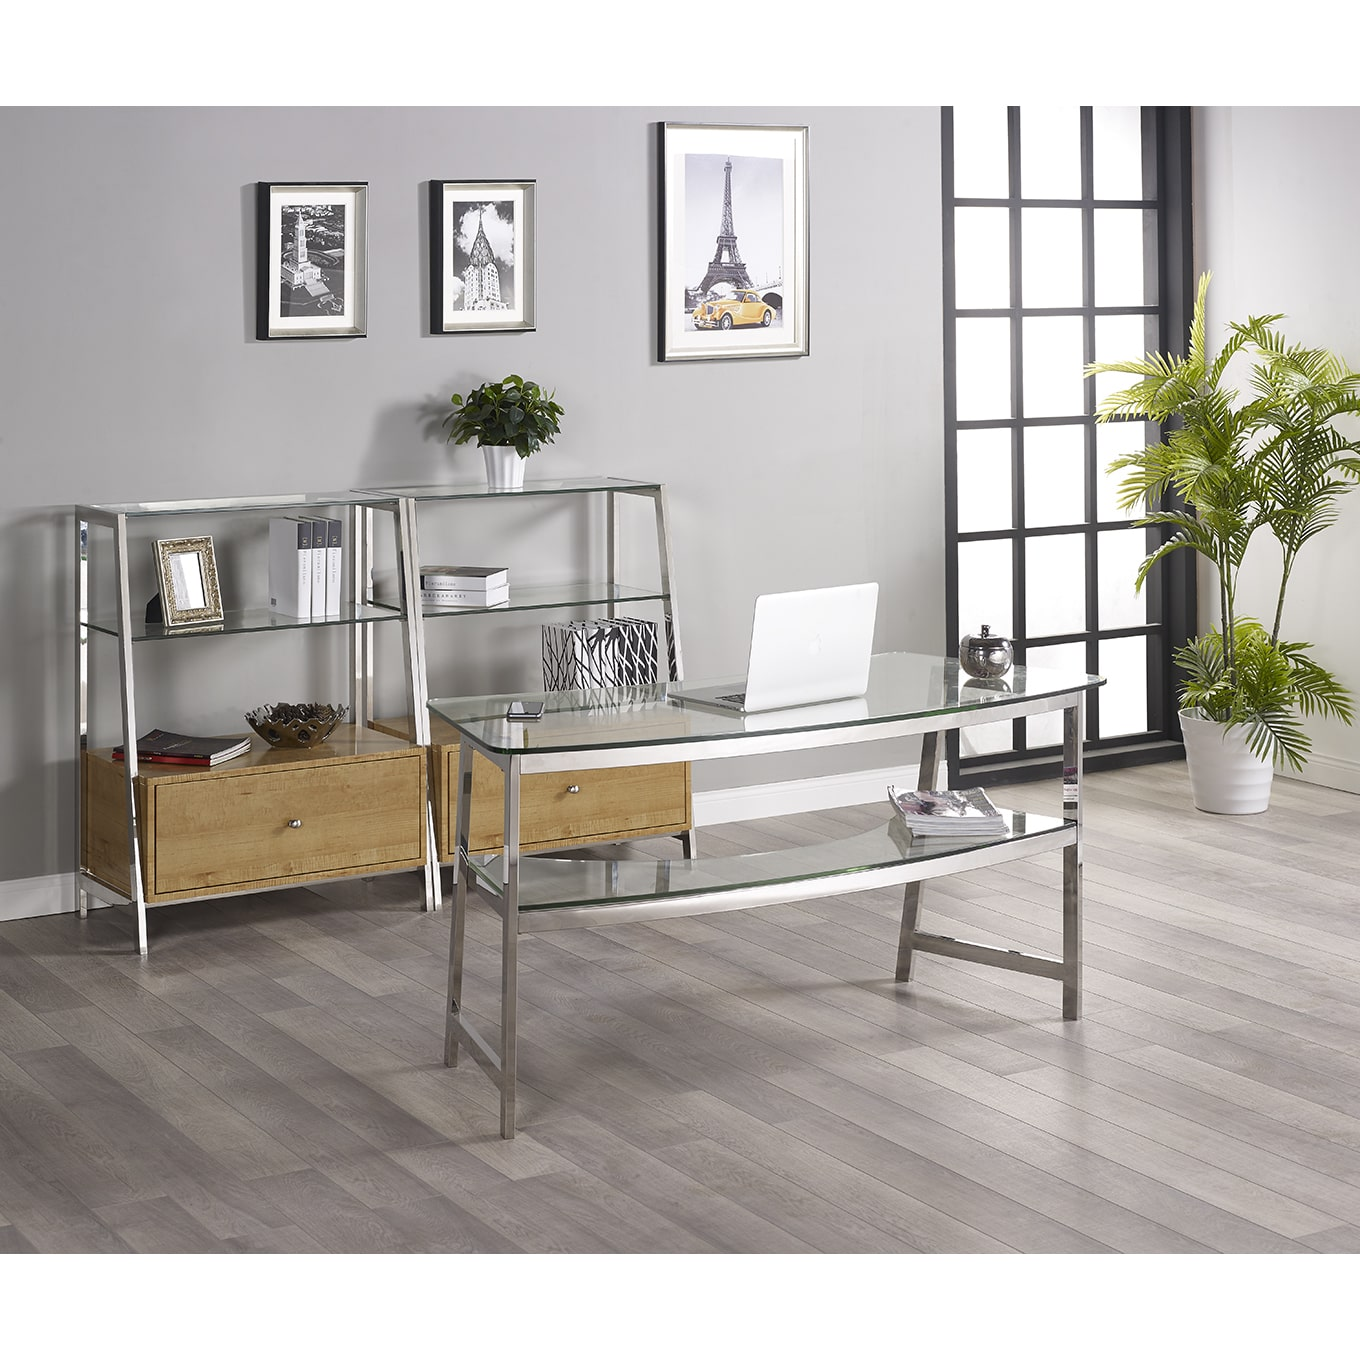 Turnkey Products LLC Tenzo 62-inch Glass Writing Desk with 2 Bookcases